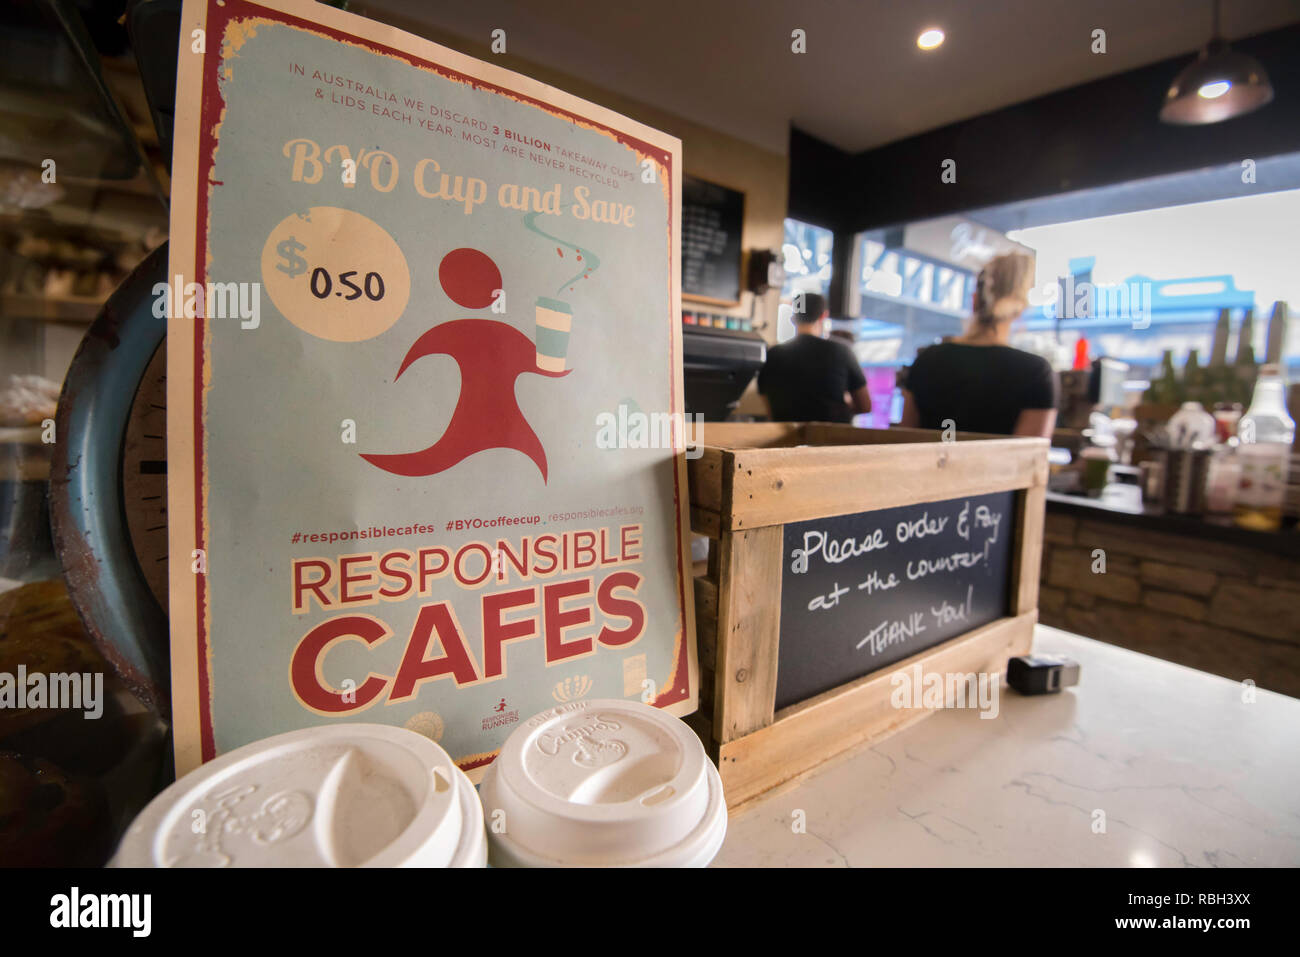 A sign in a northern Sydney cafe offering discounts for bring your own (BYO) cup coffee drinkers. Responsible Cafes reducing waste and pollution. - Stock Image